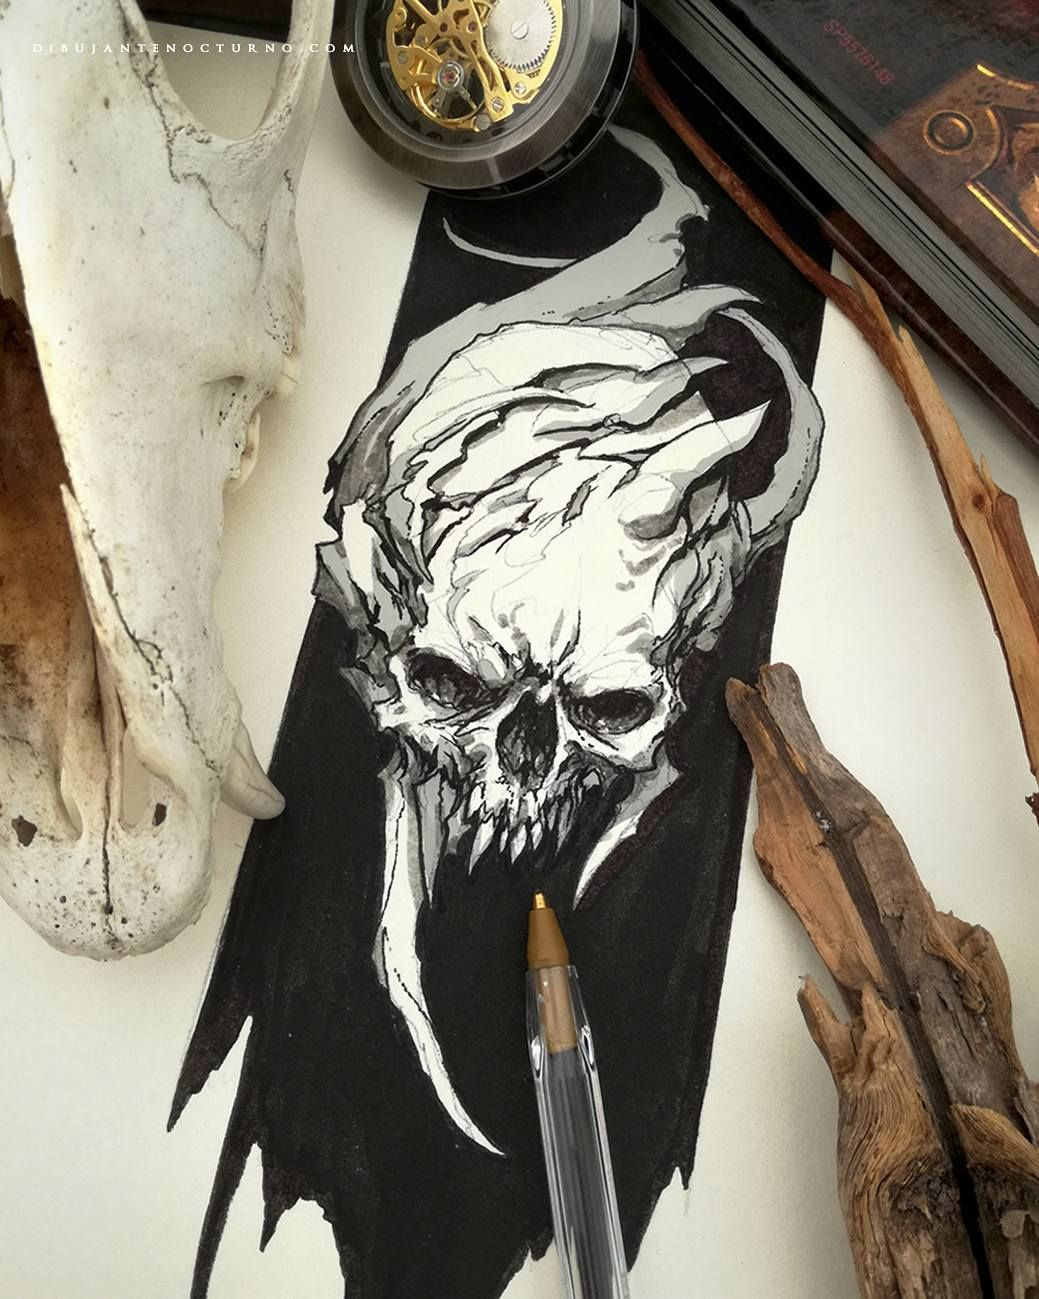 Skull drawing by Dibujante Nocturno (With images) | Skull ...